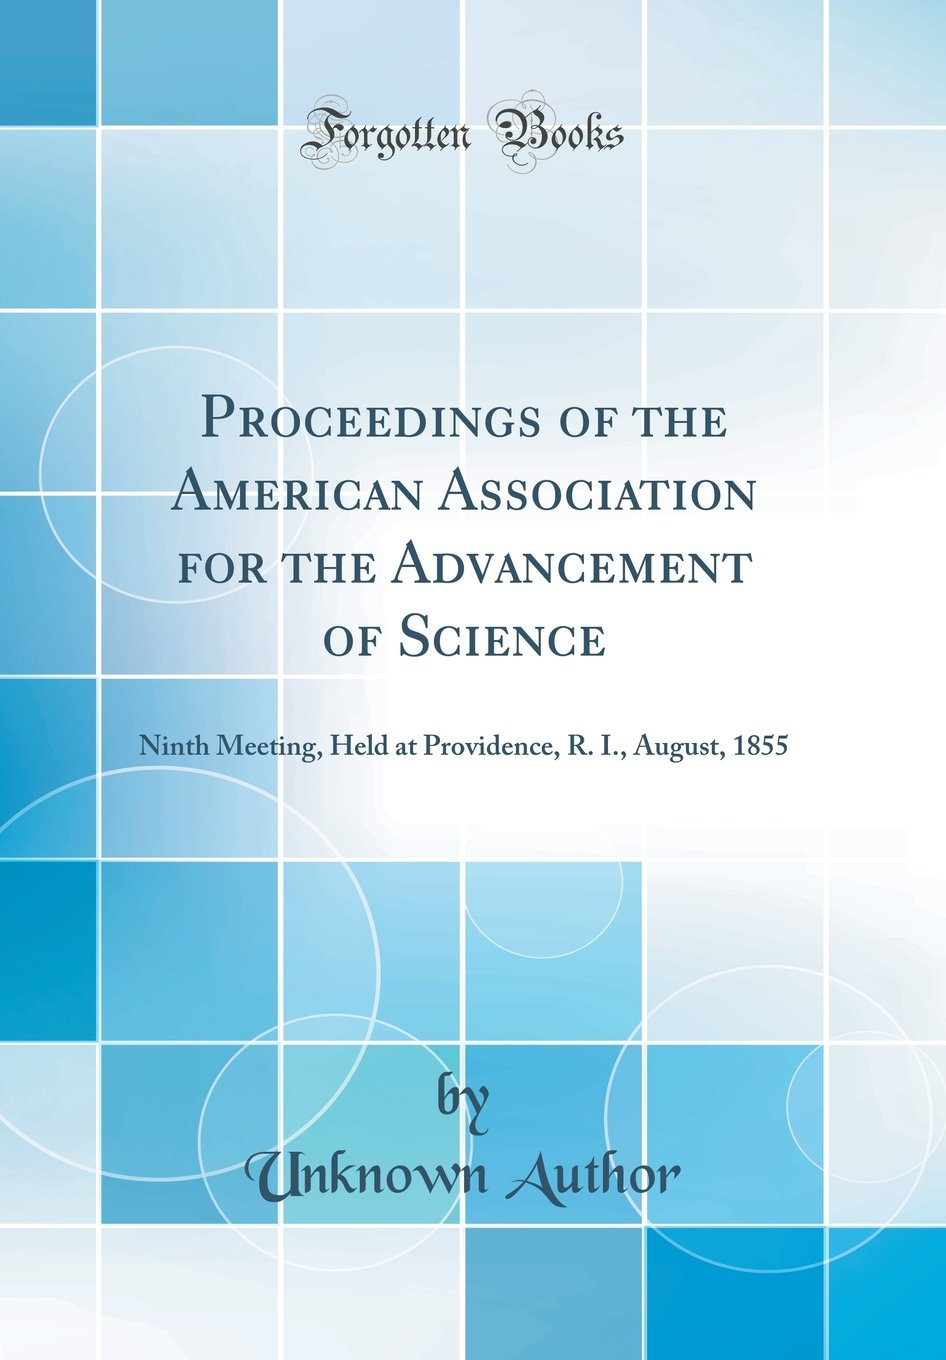 Download Proceedings of the American Association for the Advancement of Science: Ninth Meeting, Held at Providence, R. I., August, 1855 (Classic Reprint) ebook